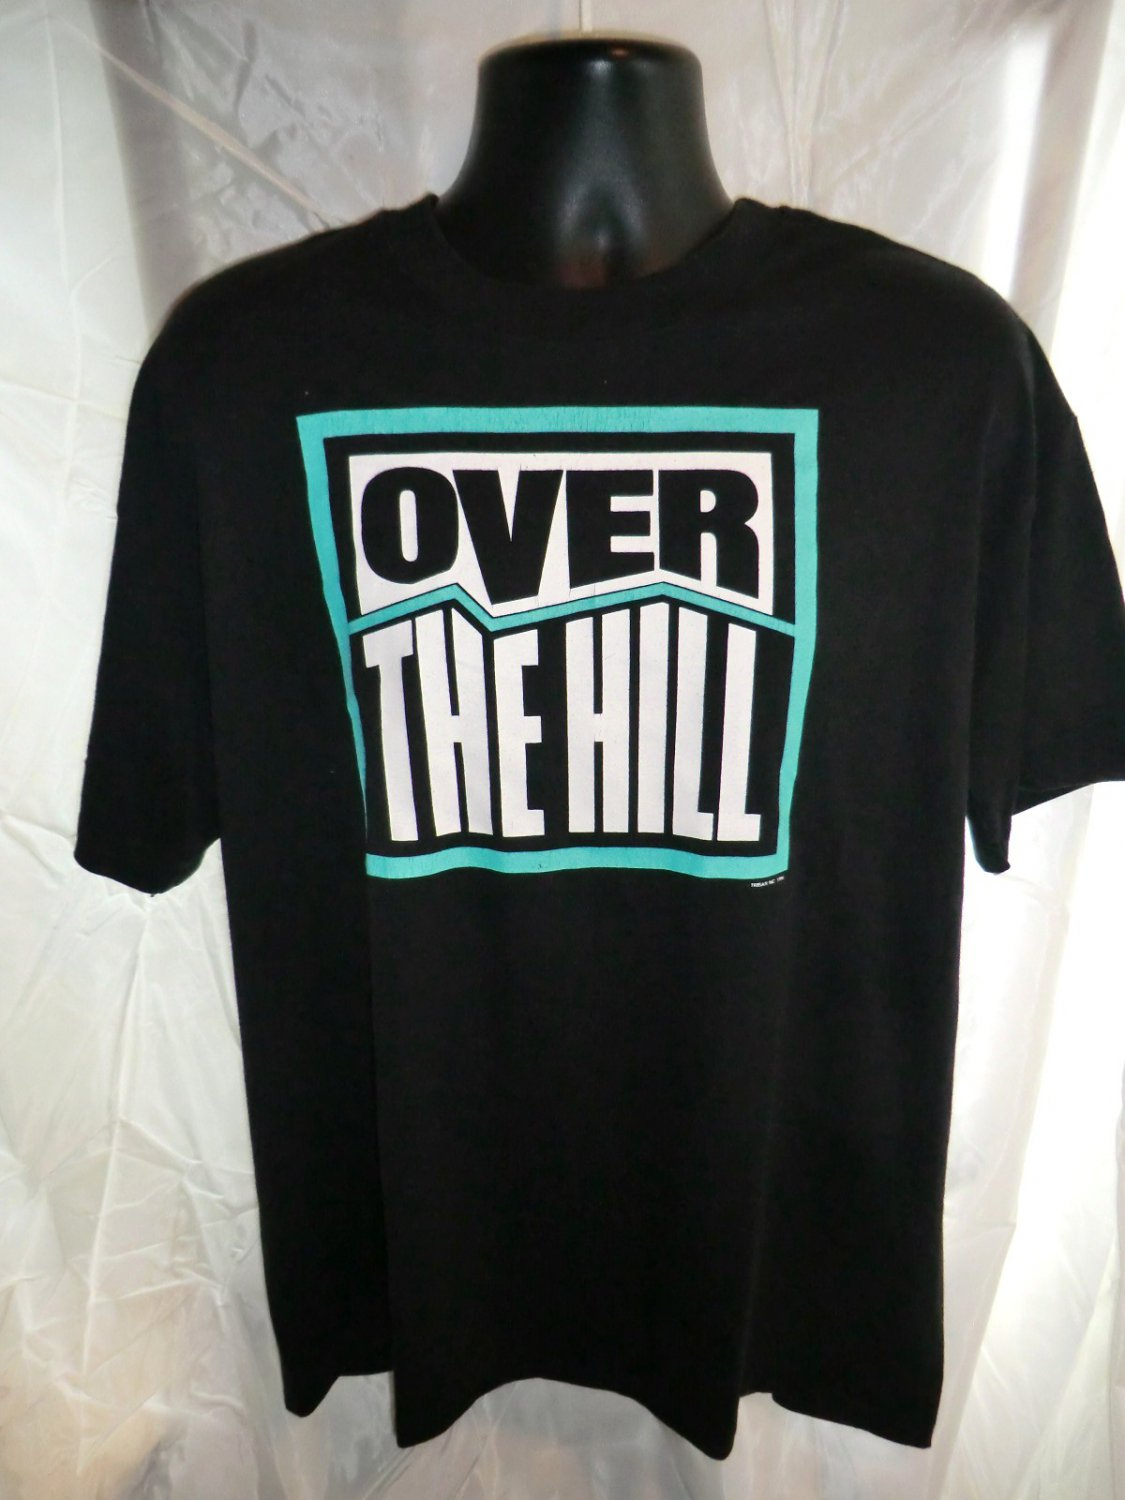 Funny OVER THE HILL T-Shirt Size Large XL Vintage 1990